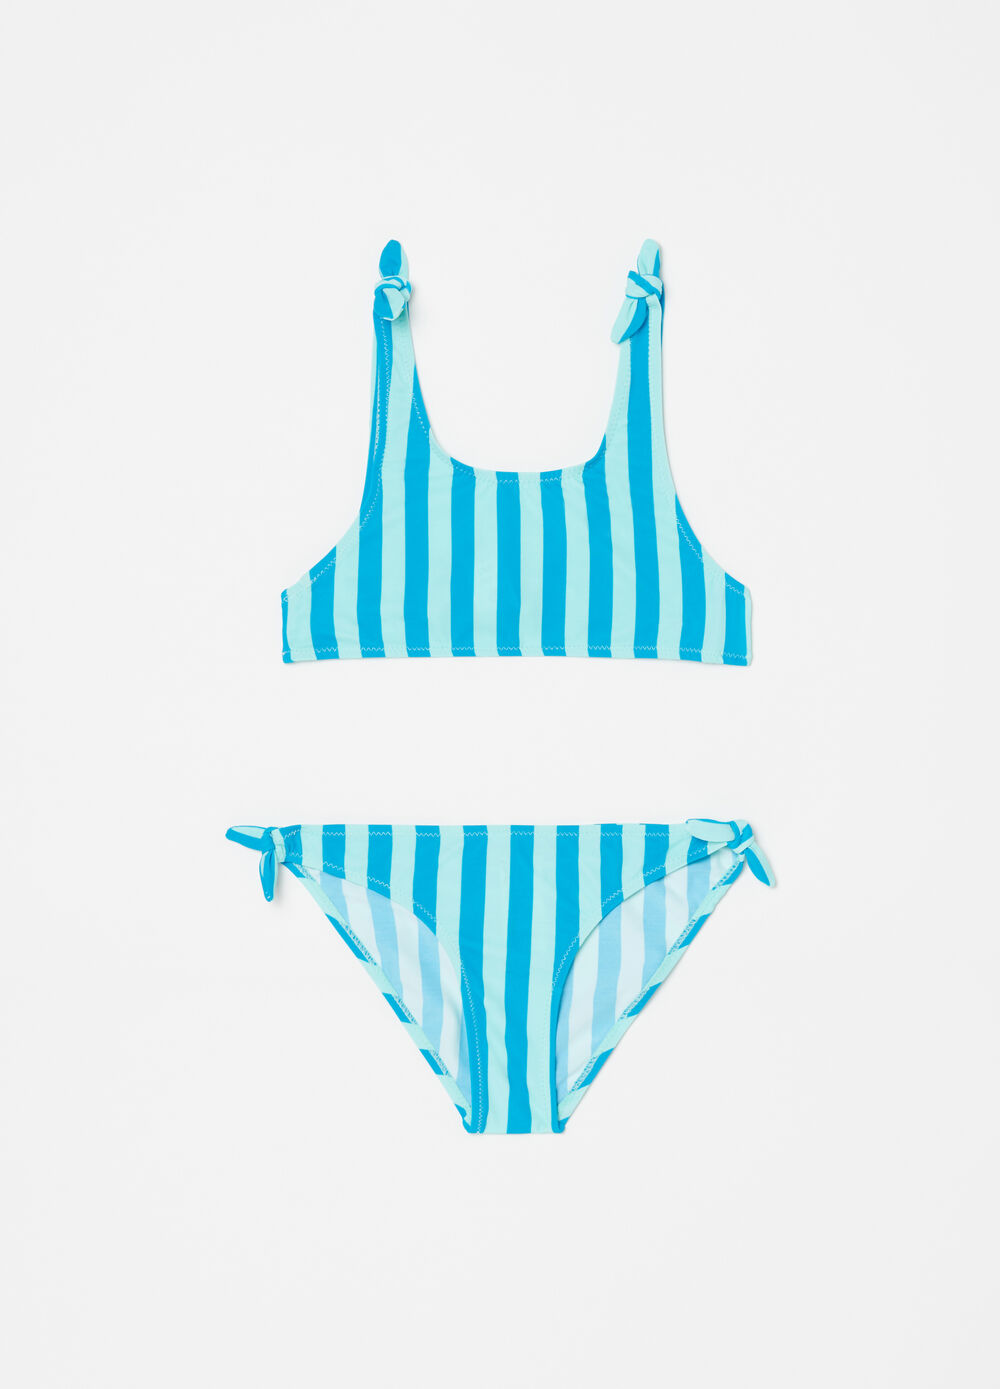 Bikini top and briefs with striped pattern